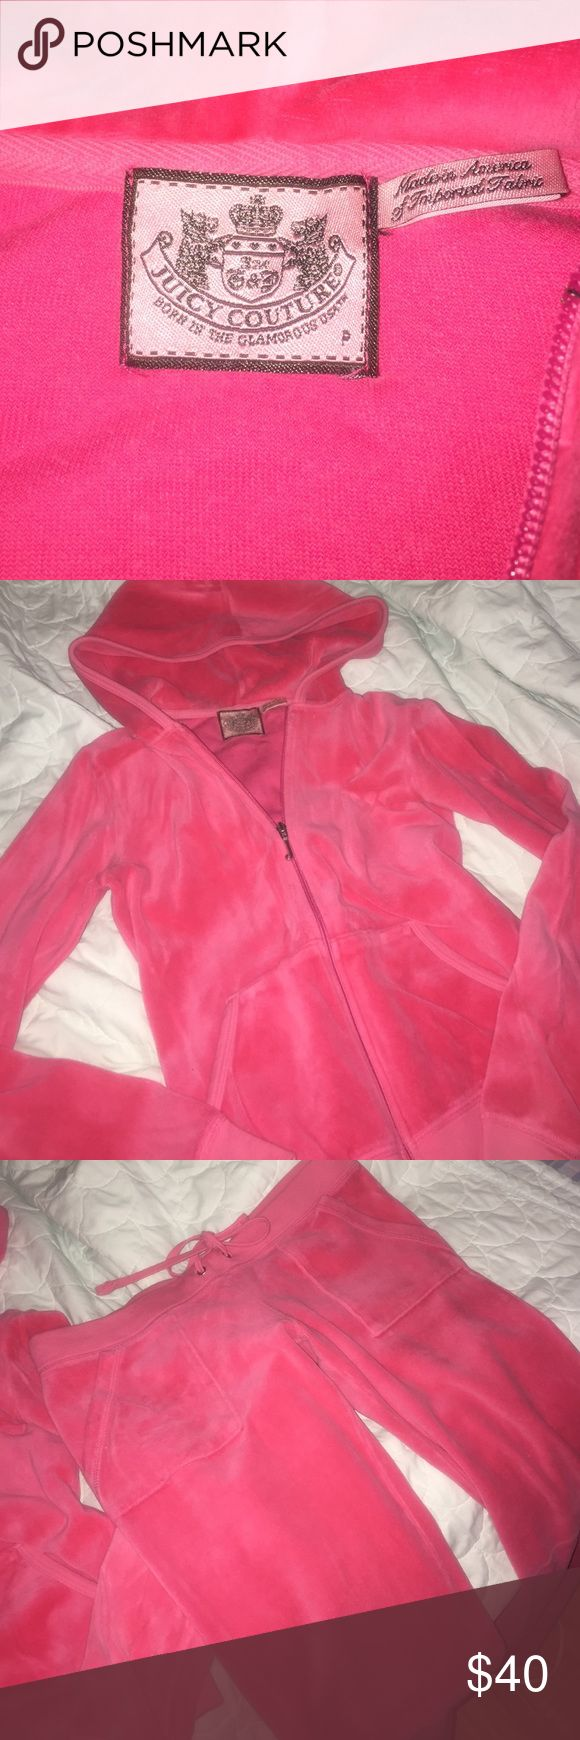 Juicy Couture- Hot Pink, Velour, 2pc Tracksuit Juicy Couture- 2piece tracksuit. Hoodie zip up and matching pants. Hot Pink Velour. So comfy and sexy too! Made in USA. Offers welcome! Juicy Couture Other